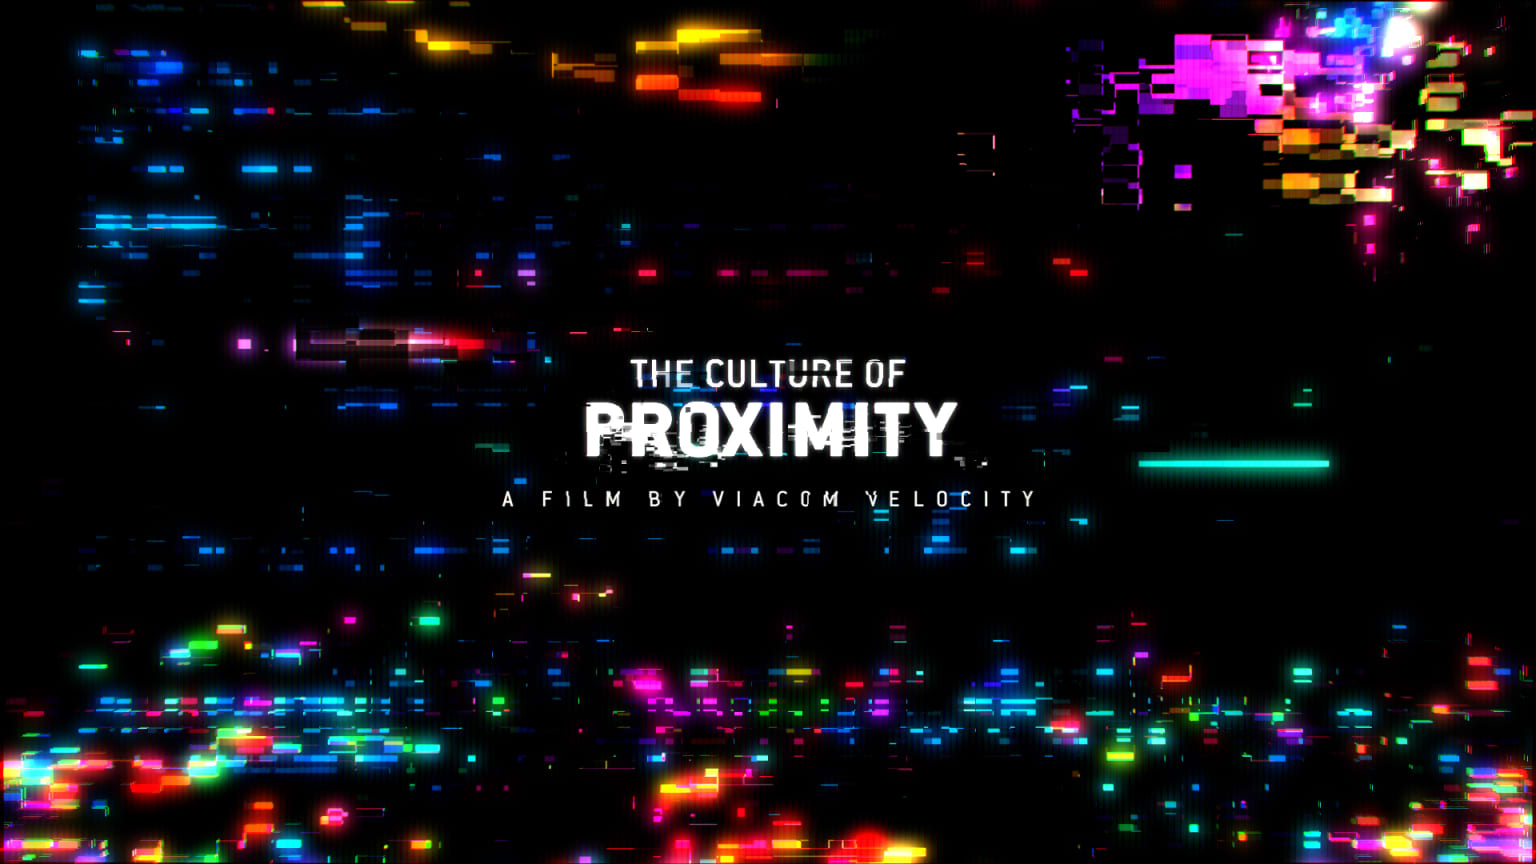 Viacom Velocity - The Culture of Proximity